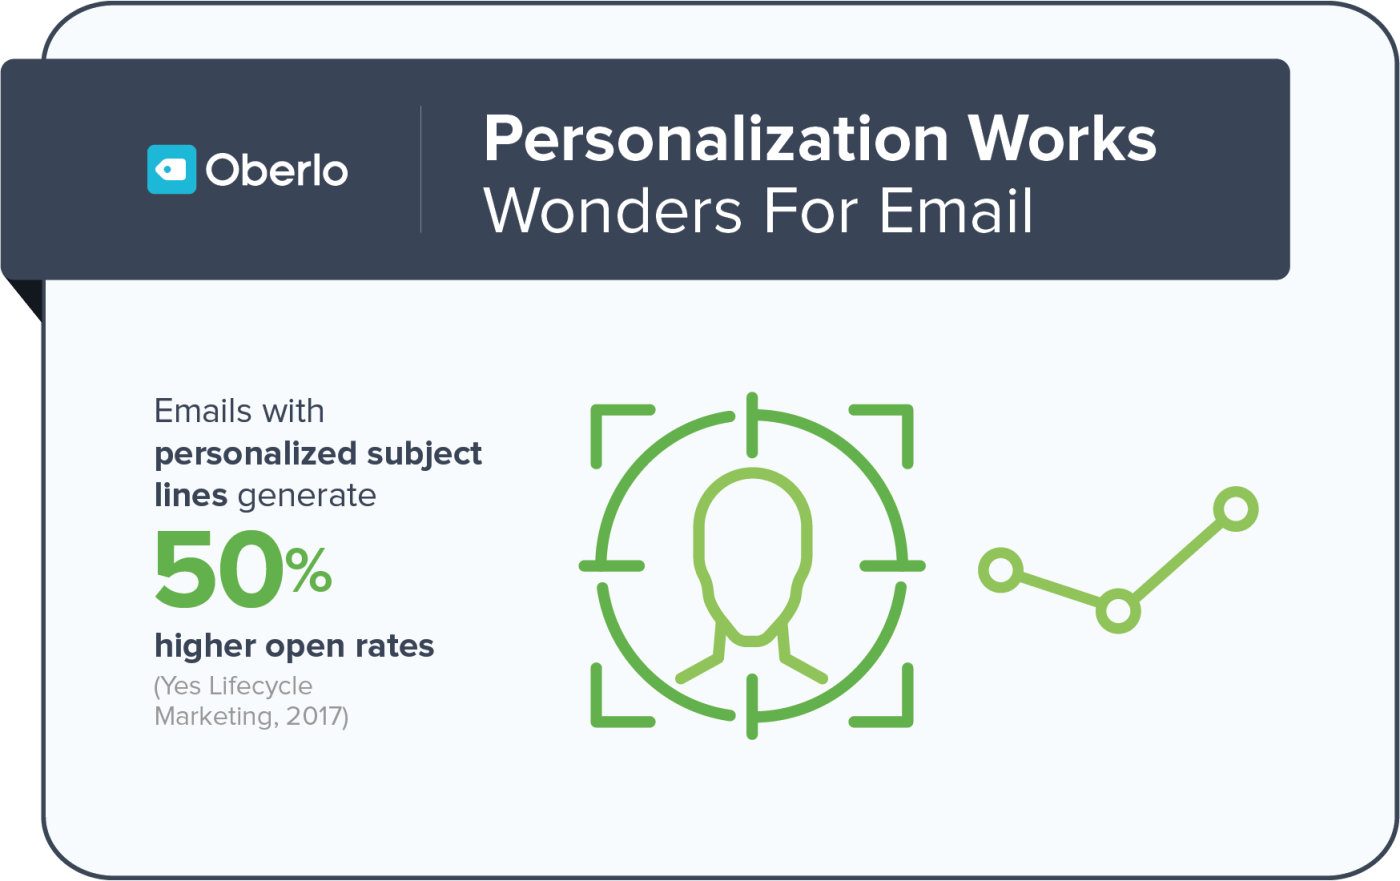 marketermagic - livepic email personalization